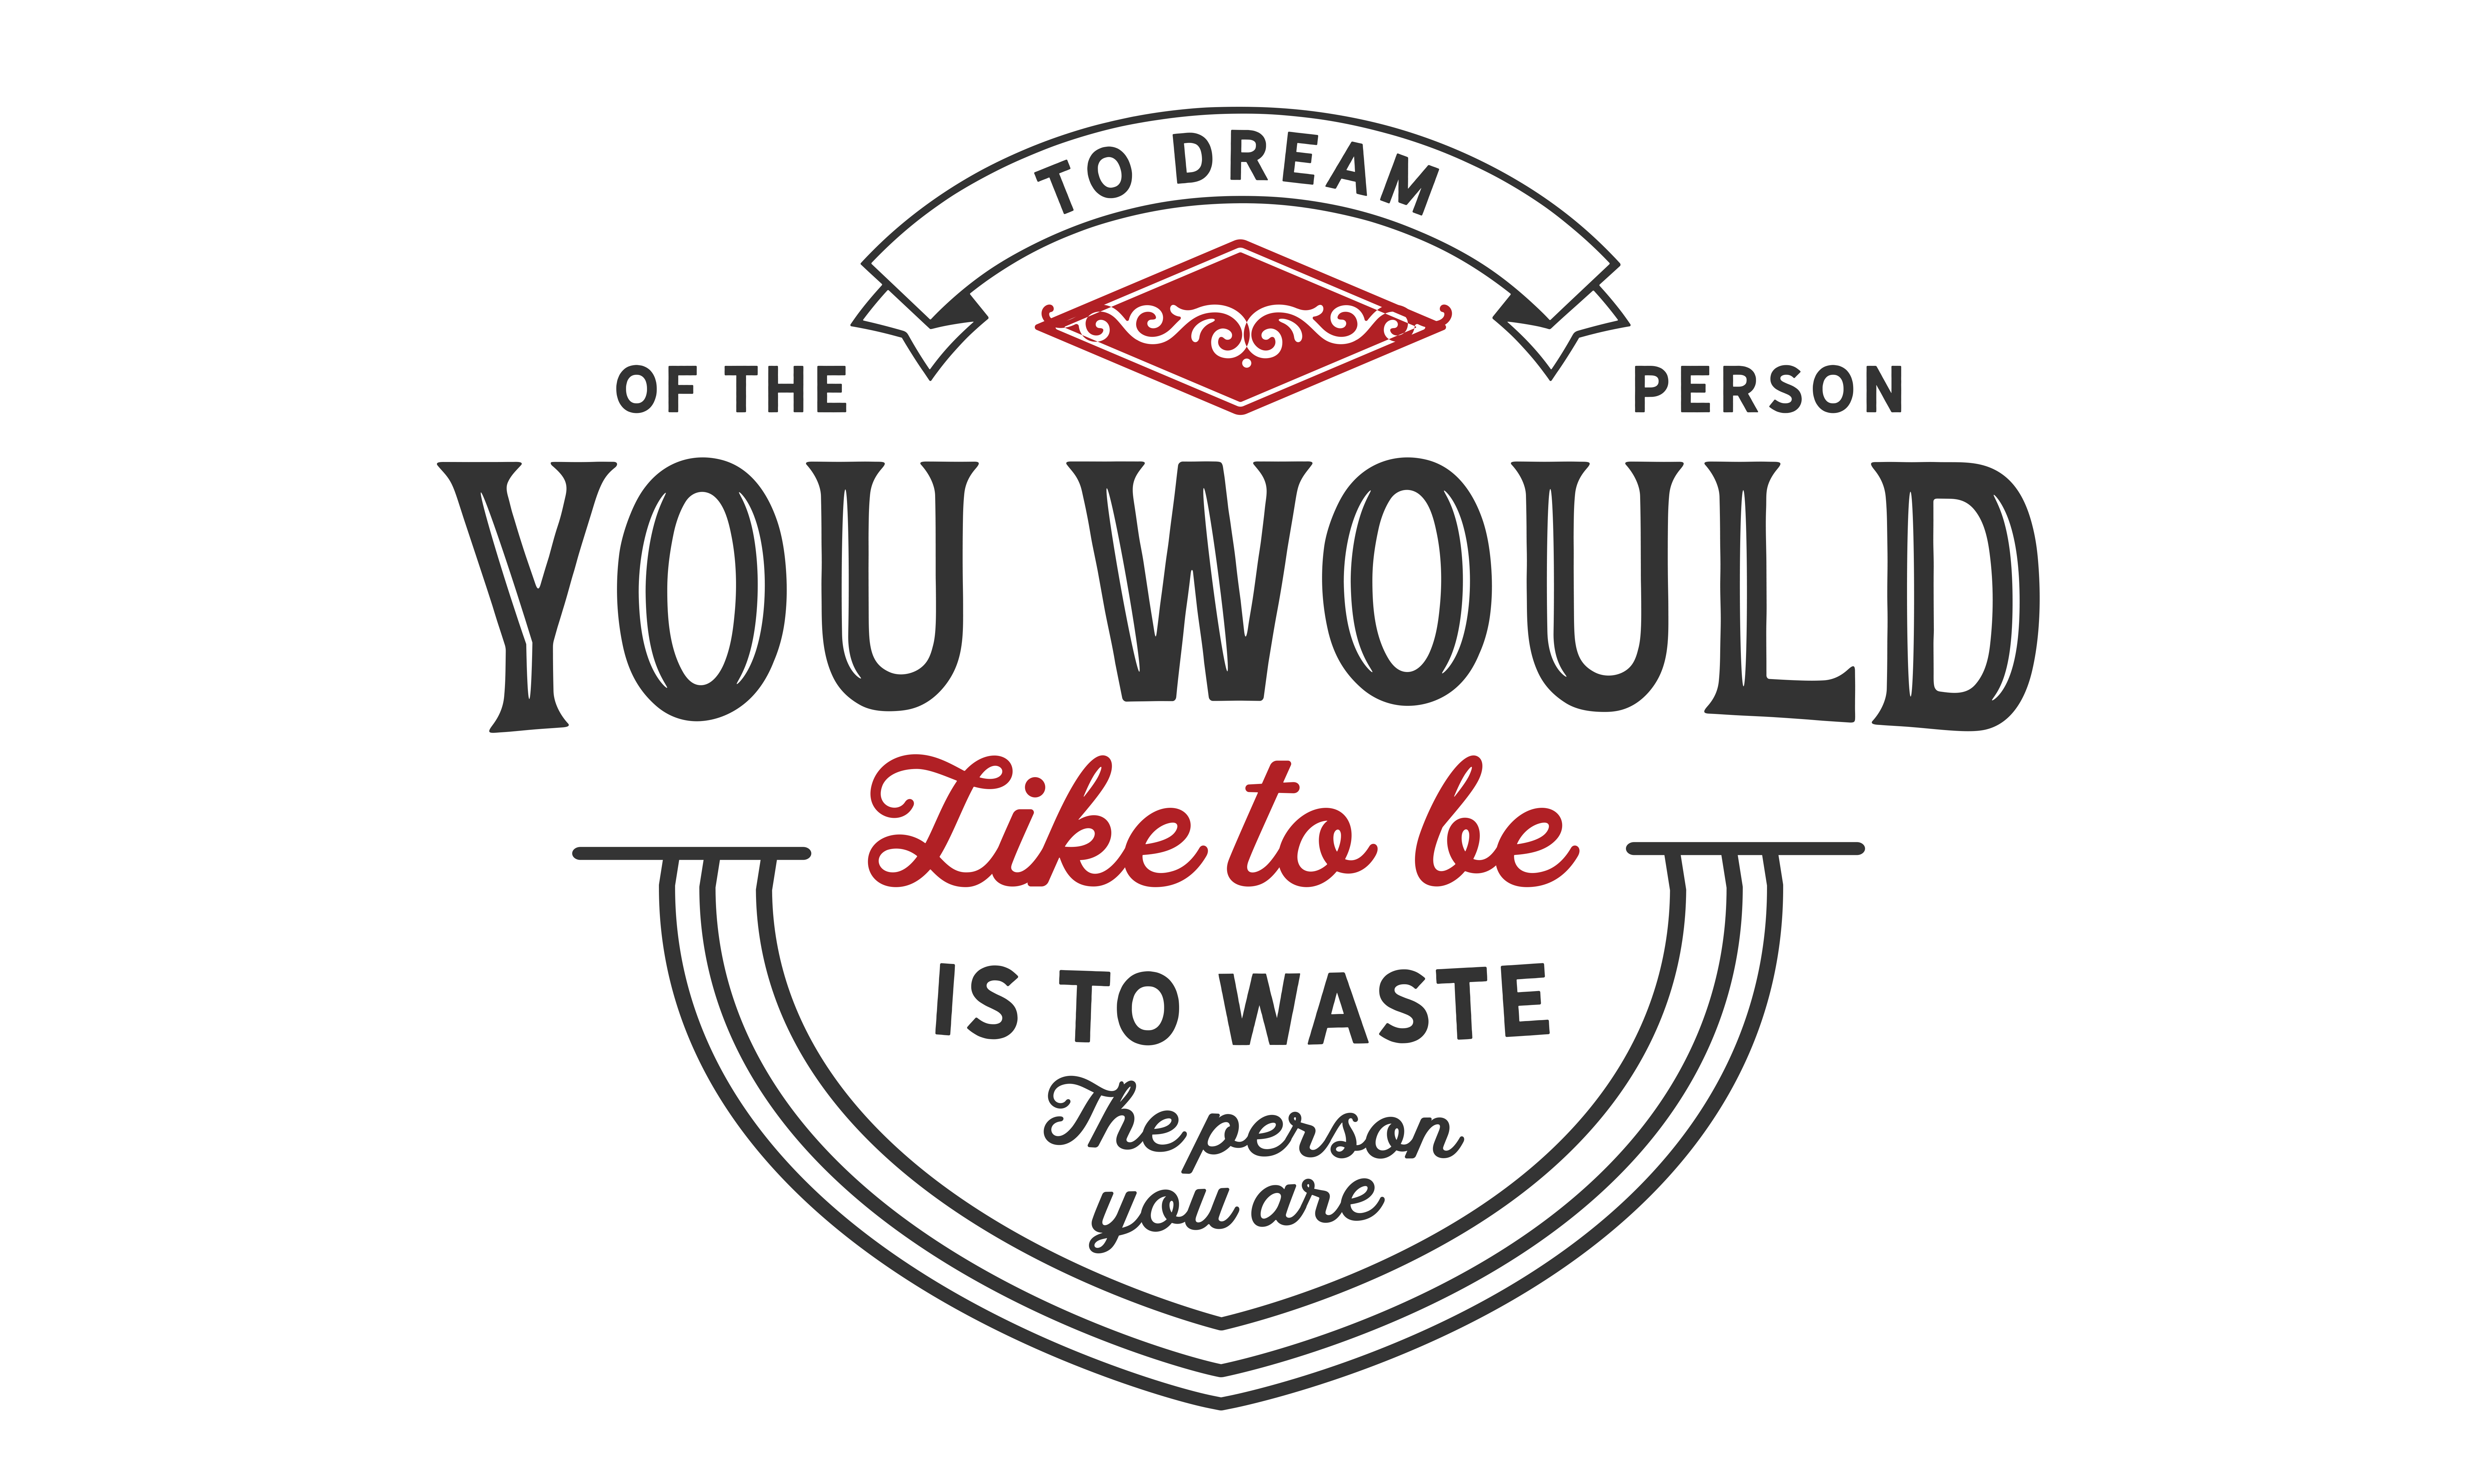 Download Free To Dream Of The Person Graphic By Baraeiji Creative Fabrica for Cricut Explore, Silhouette and other cutting machines.